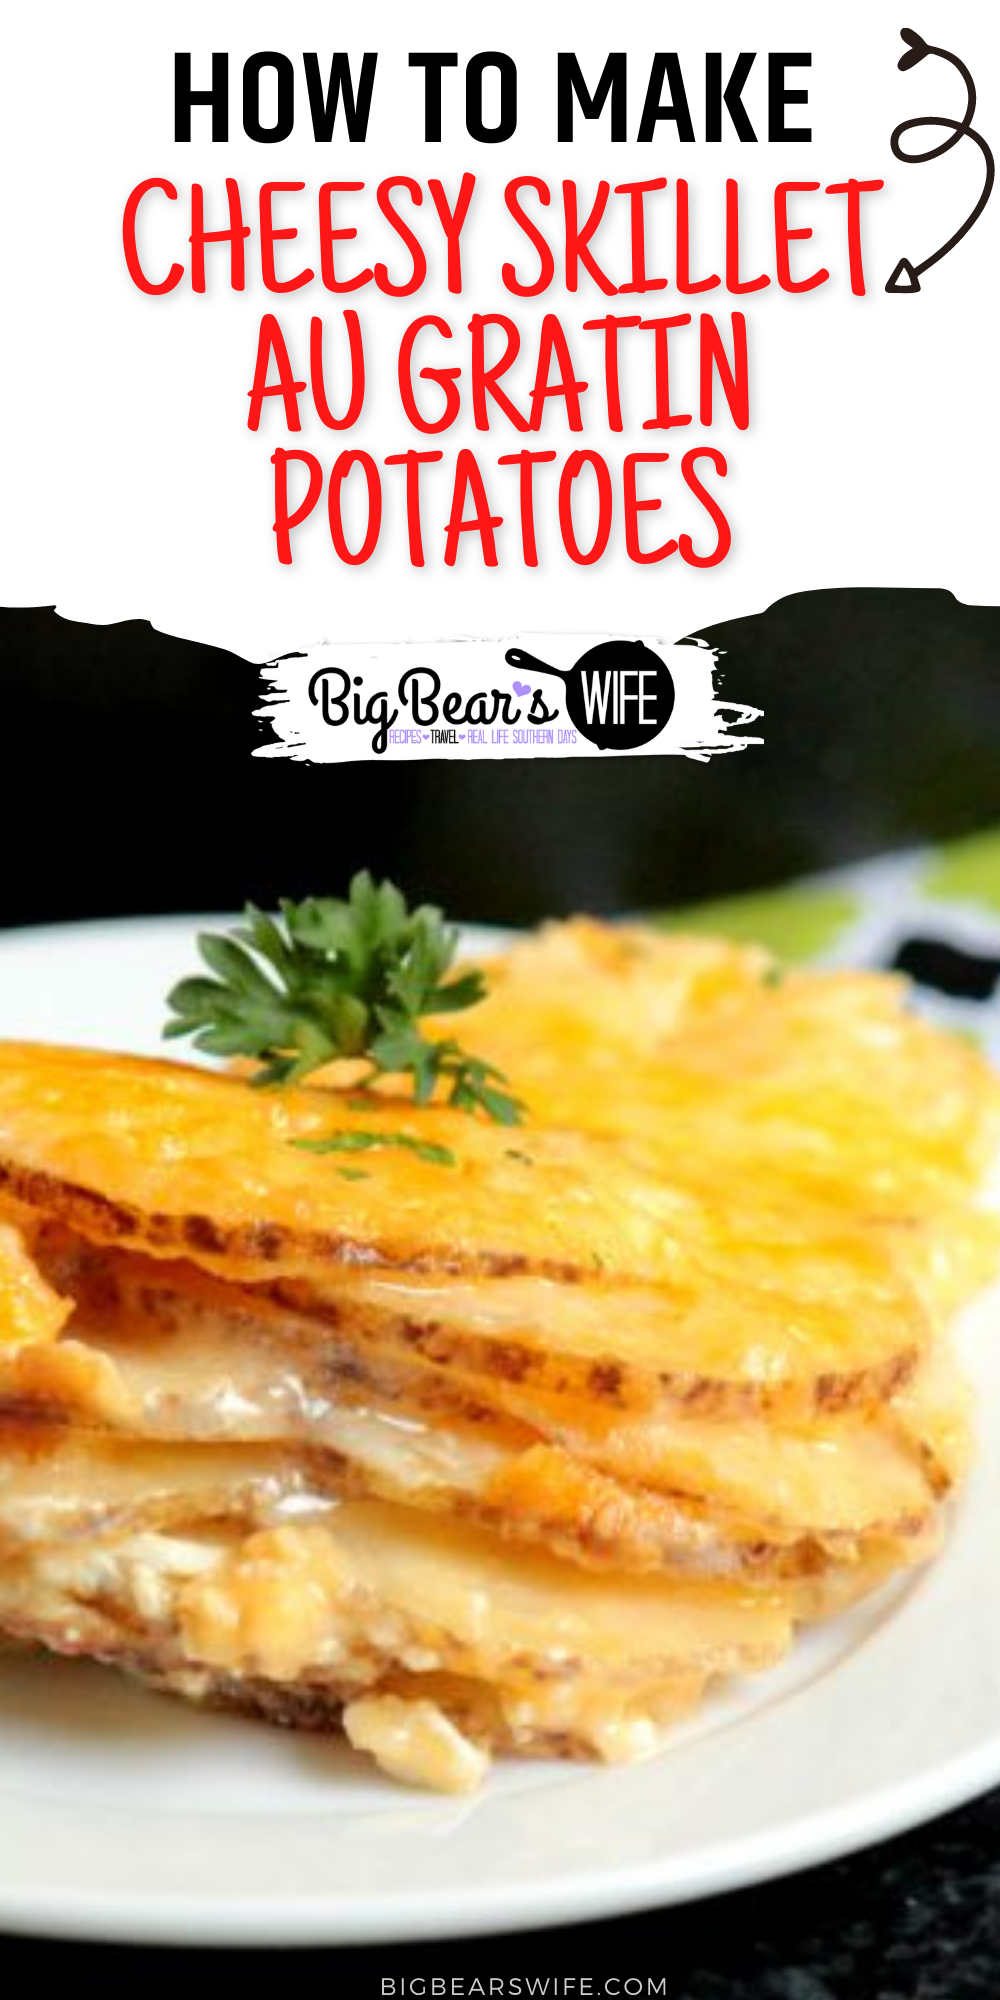 The Cheesy Skillet Au Gratin Potatoes are piled high in a cast iron skillet which means they can be cooked in the oven or in a covered grill via @bigbearswife